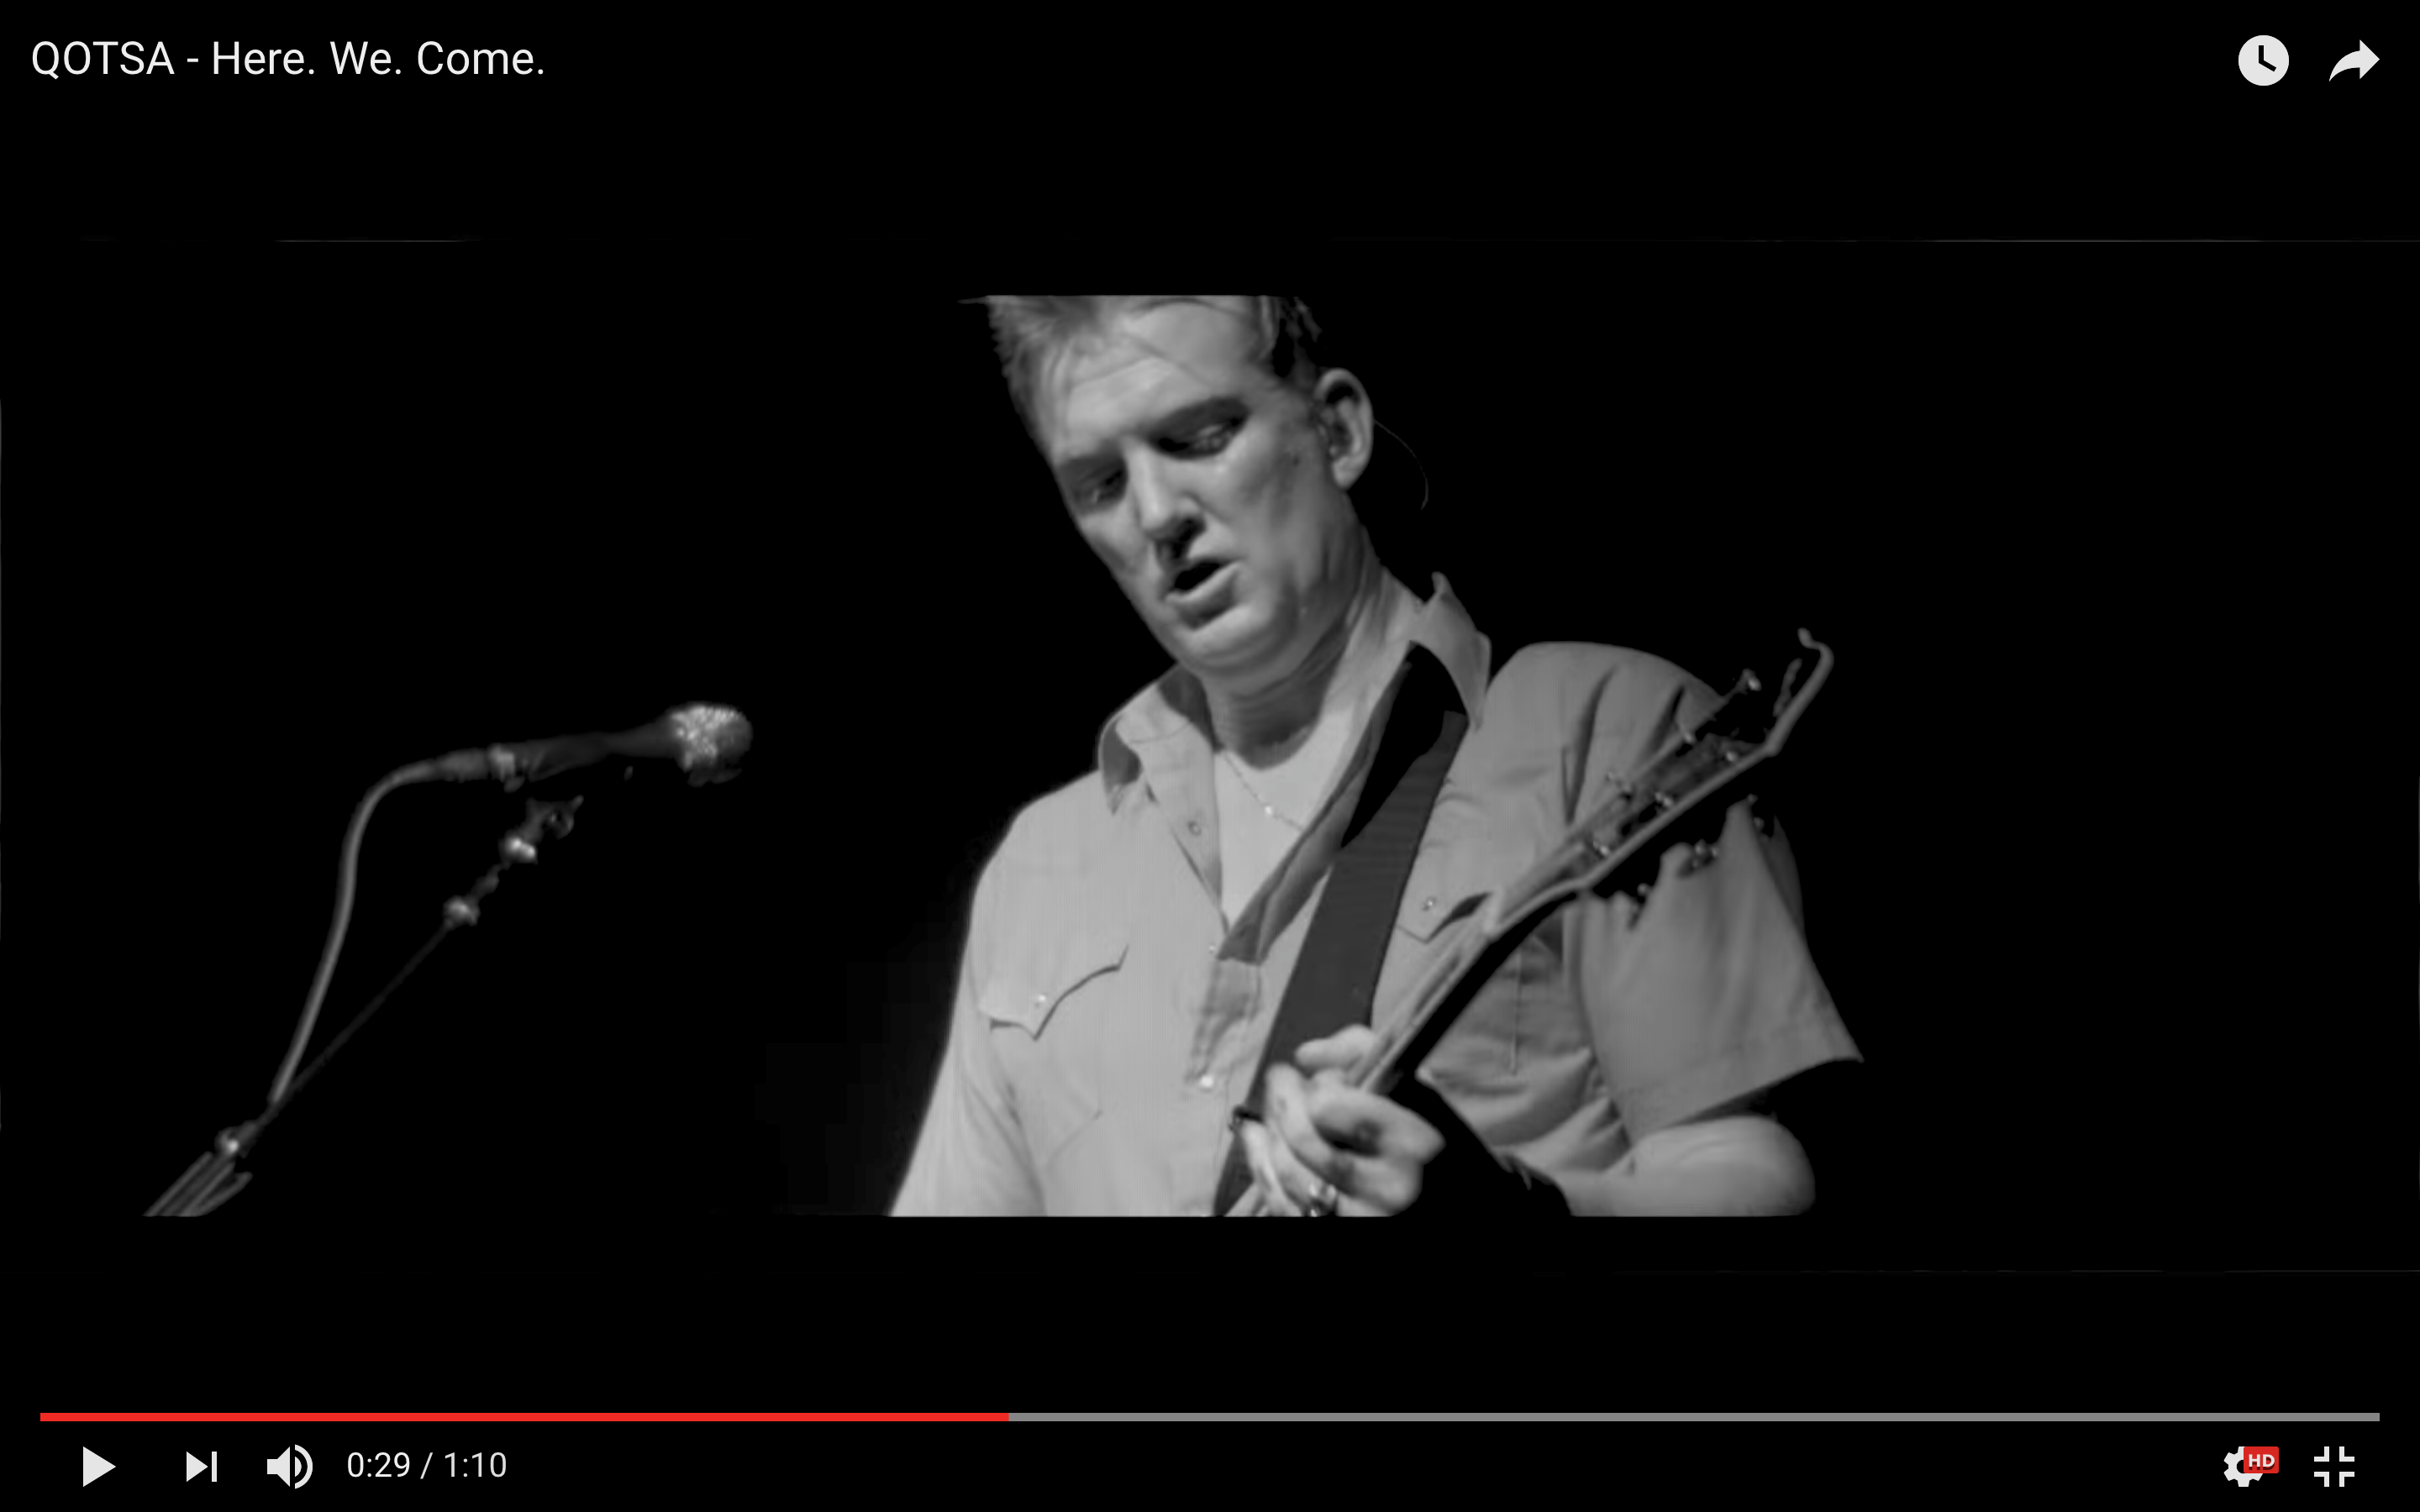 Queens Of The Stone Age Release Video For 'HERE. WE. COME.'